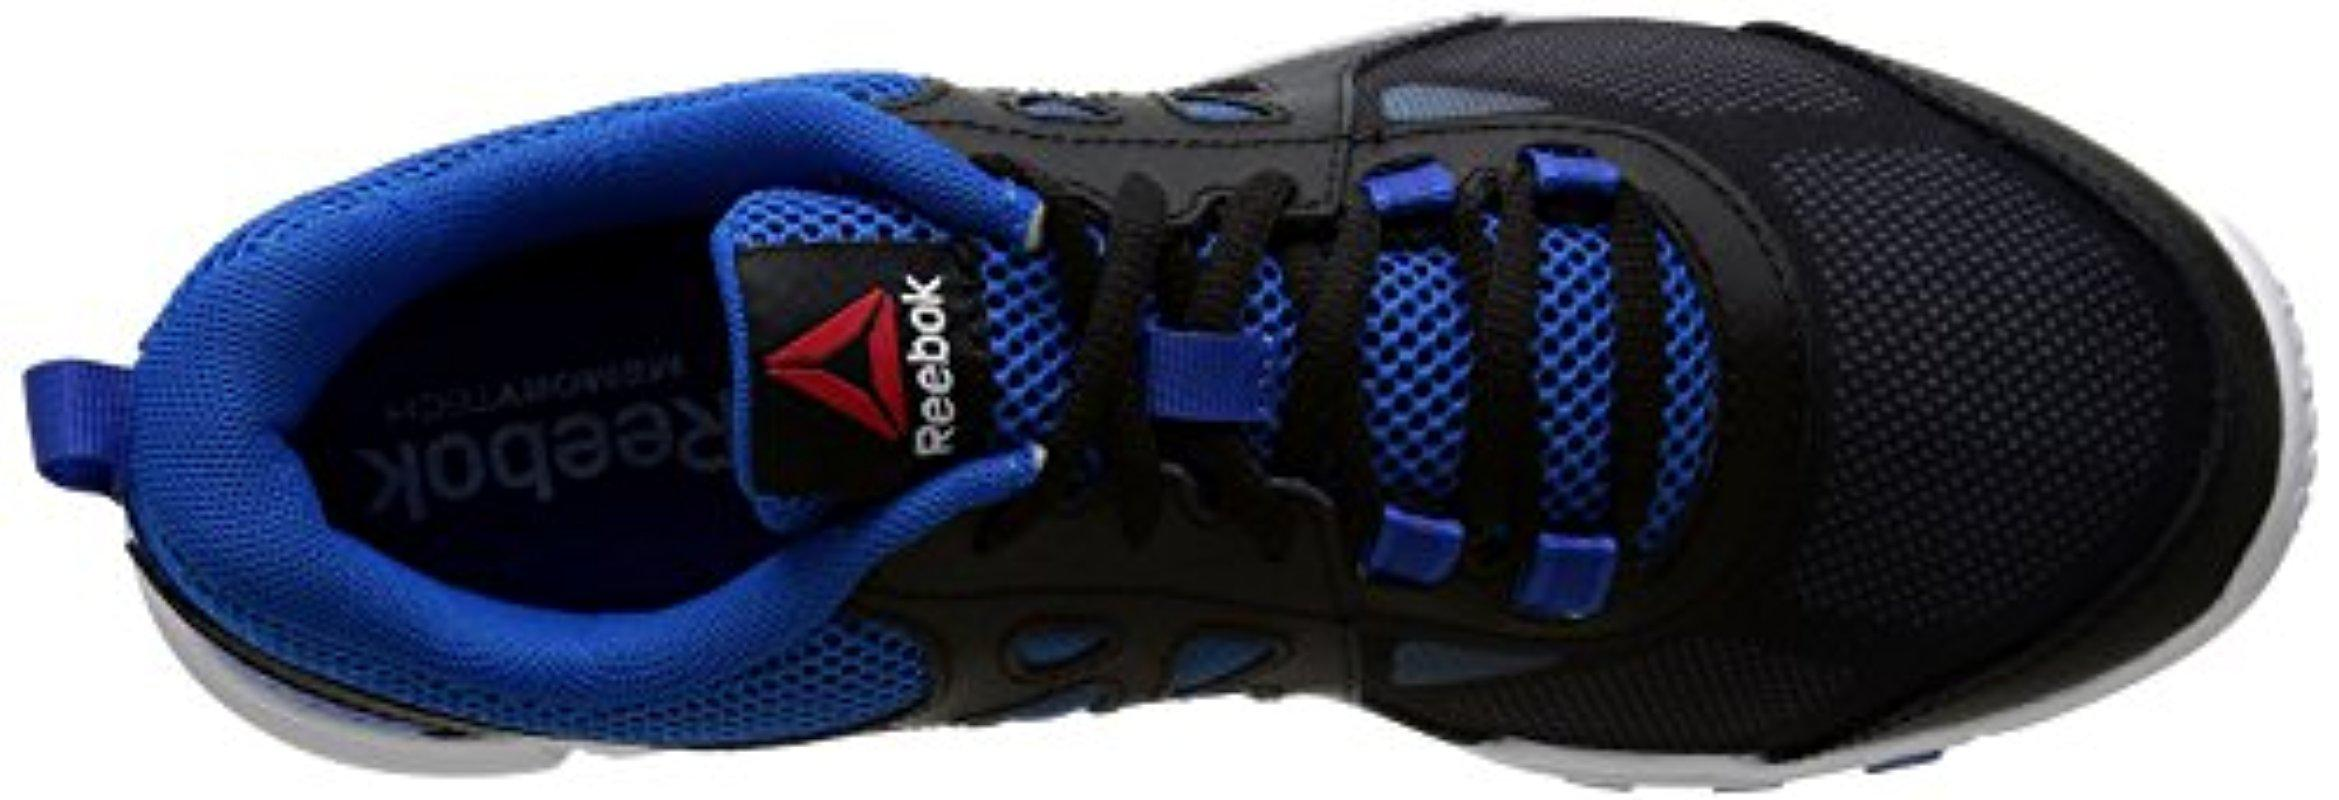 d59406d5174f88 Lyst - Reebok Sub Lite Train 4.0 L Mt Cross-training Shoe in Blue ...